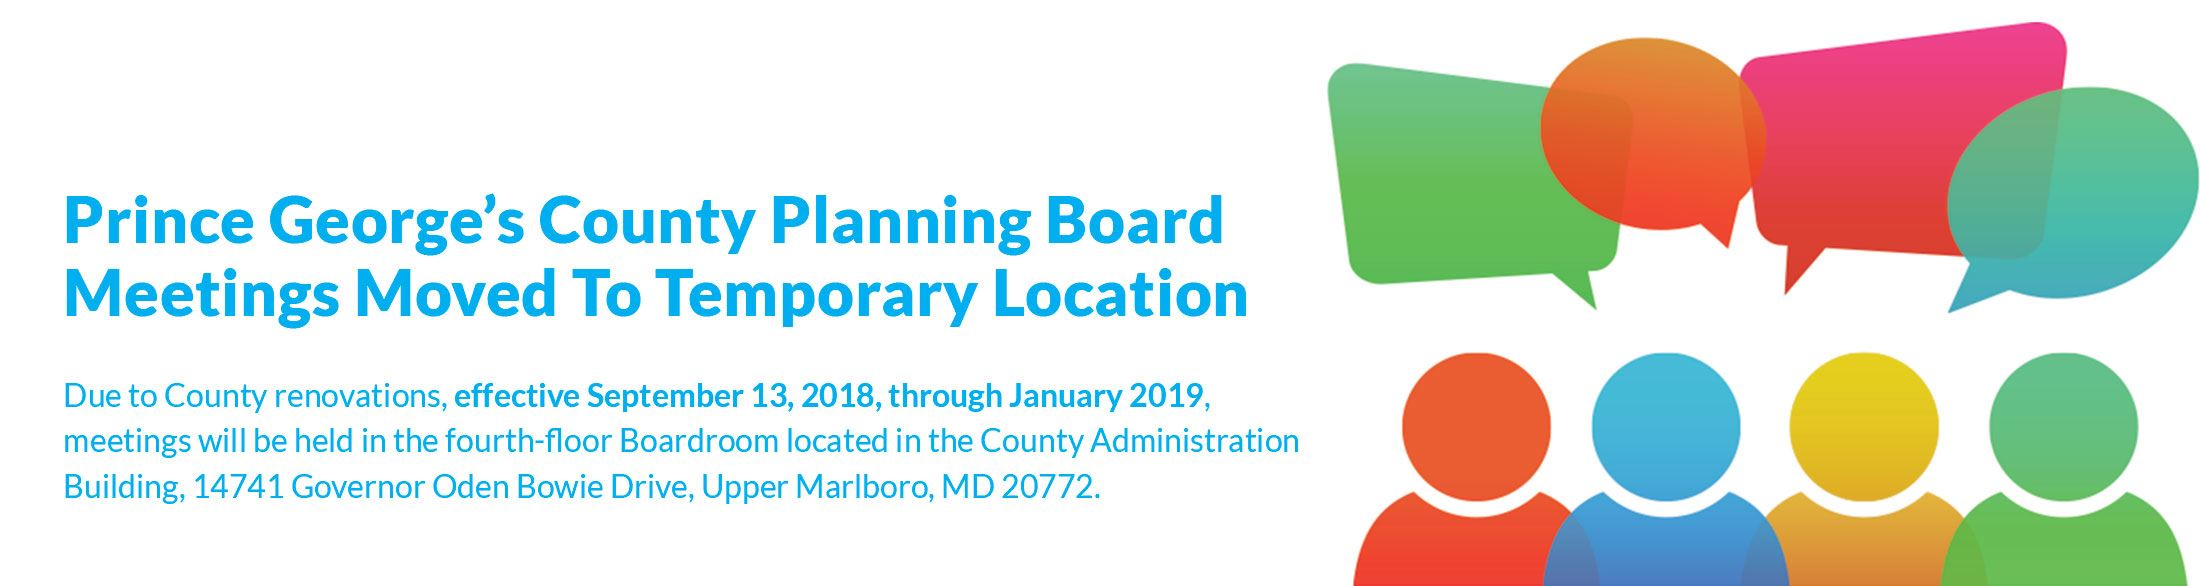 Prince George's County Planning Board Meetings Moved To Temporary Location